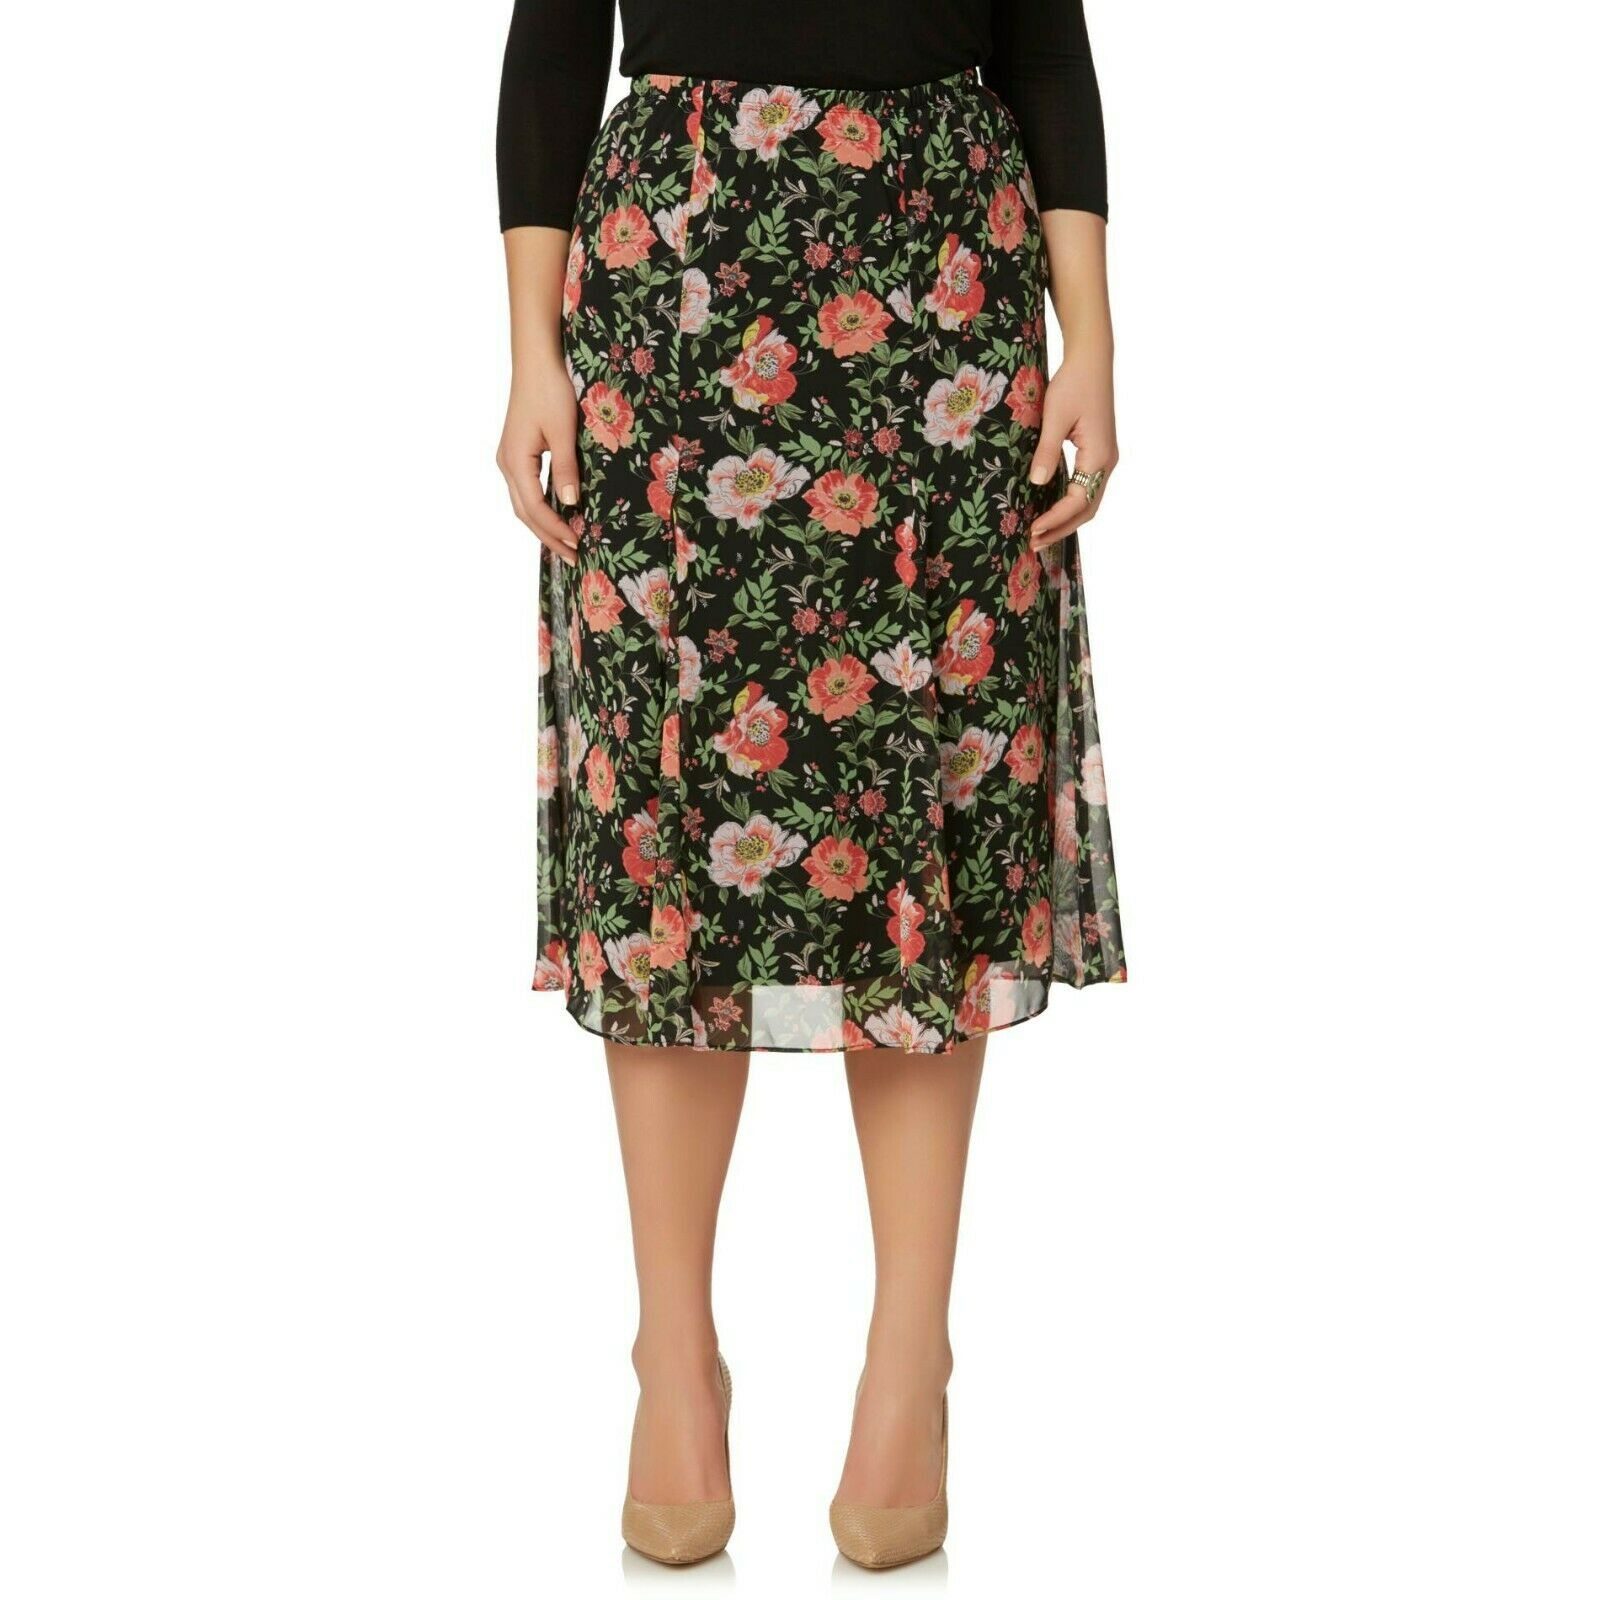 Ladiies  Skirt Mid Calf  orange Floral Size 2X New